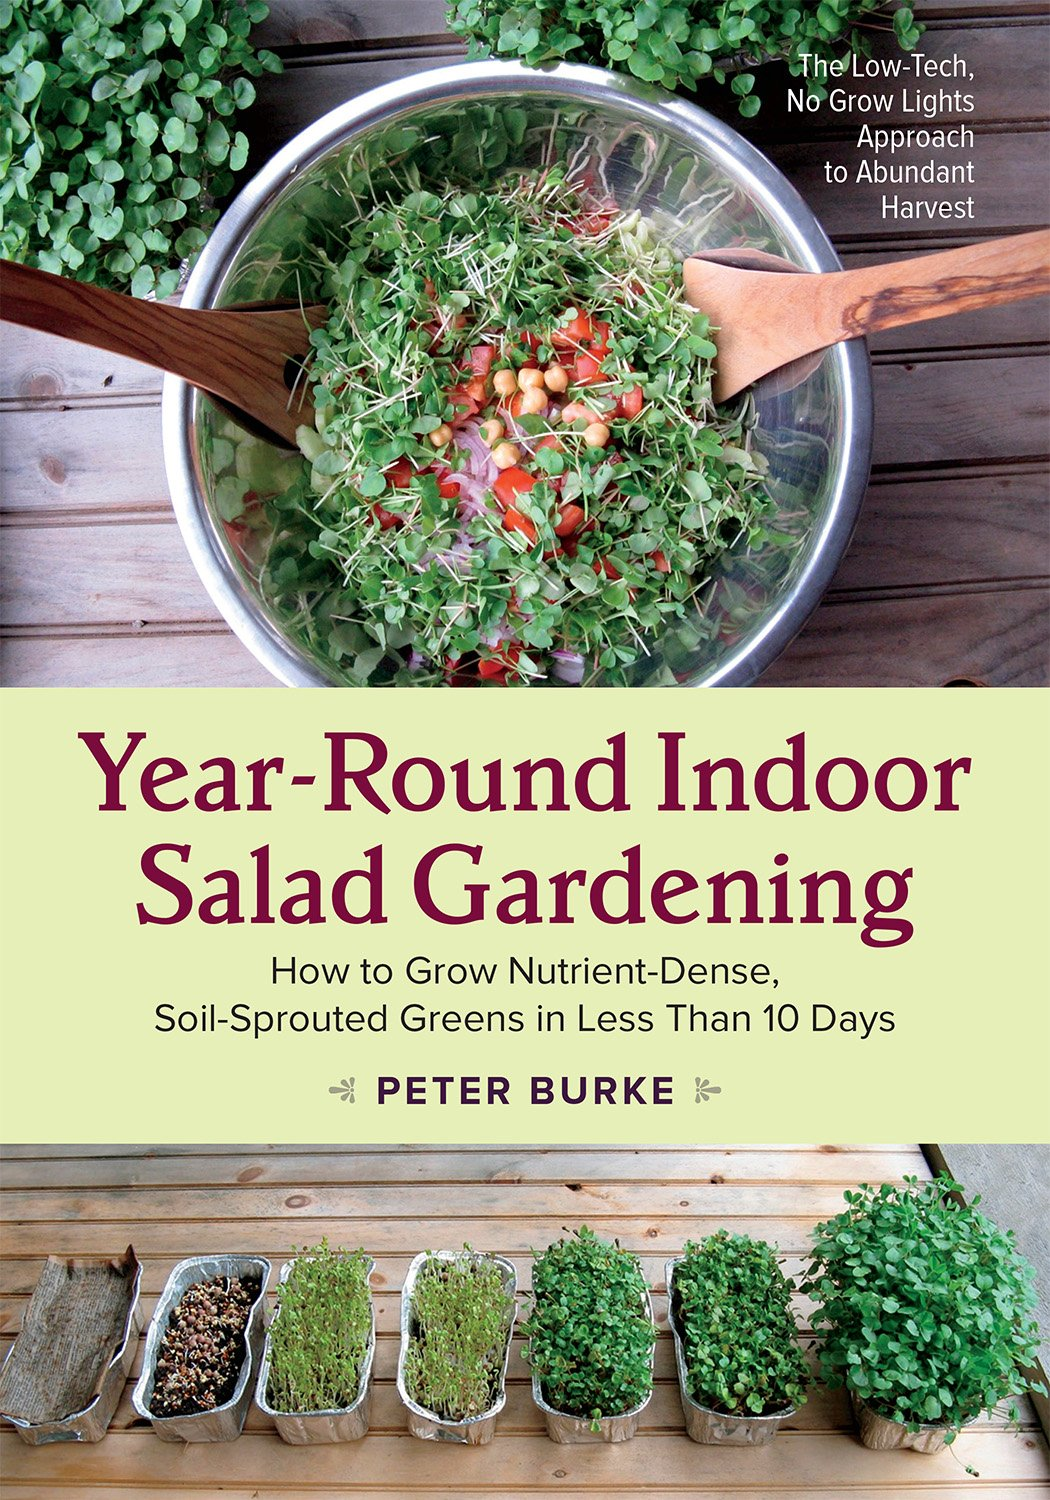 Year-Round Indoor Salad Gardening: How to Grow Nutrient-Dense, Soil-Sprouted Greens in Less Than 10 days by CHELSEA GREEN